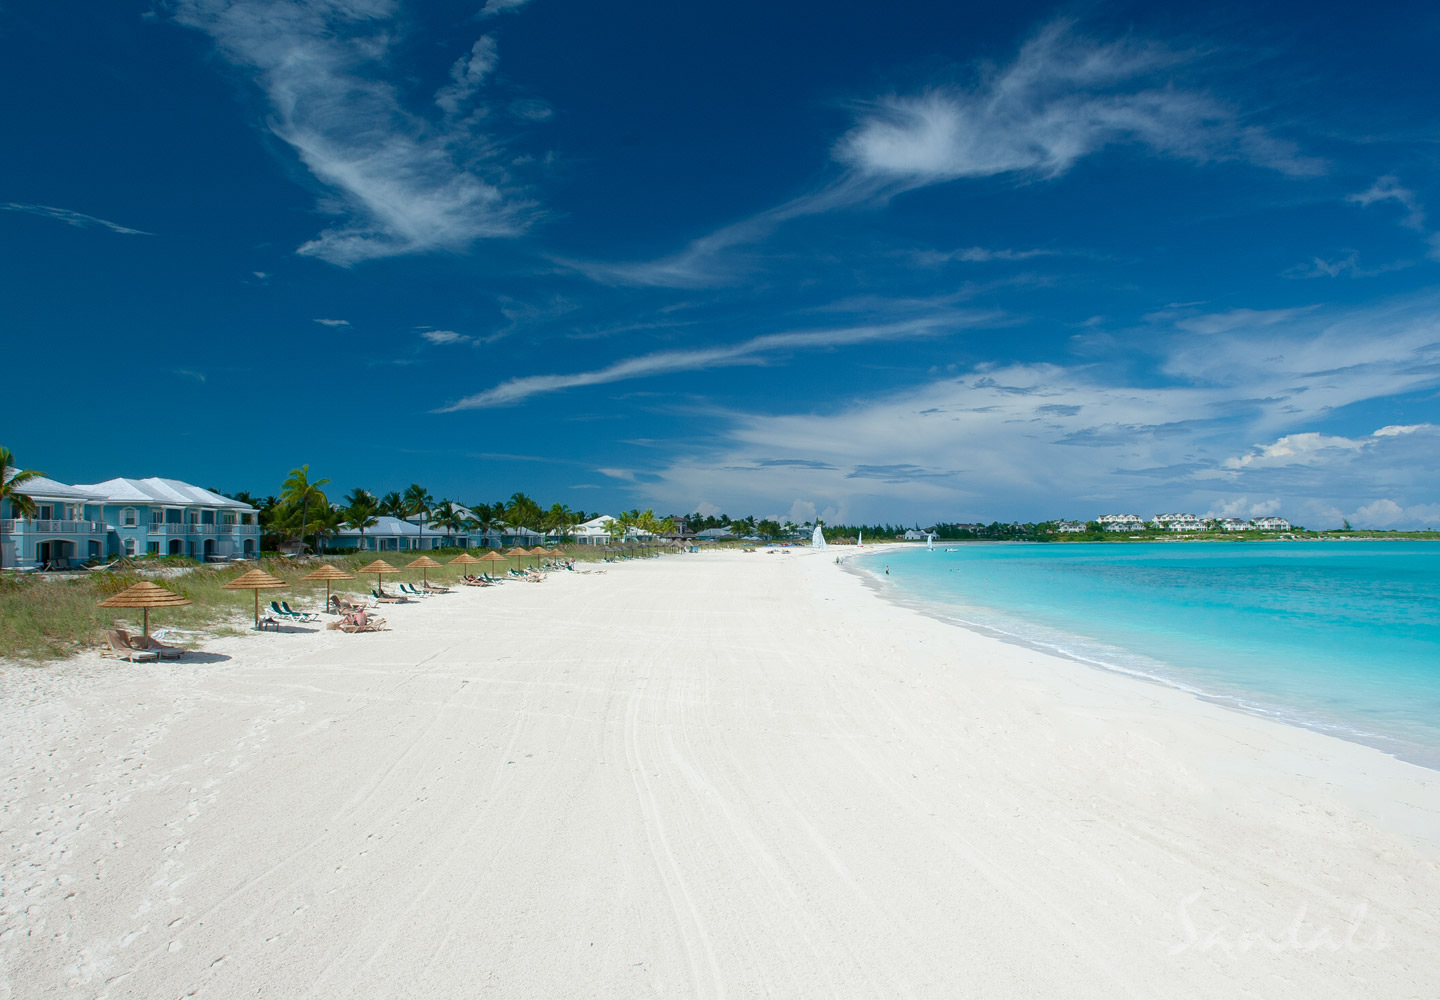 Travel Agency All-Inclusive Resort Sandals Emerald Bay 117